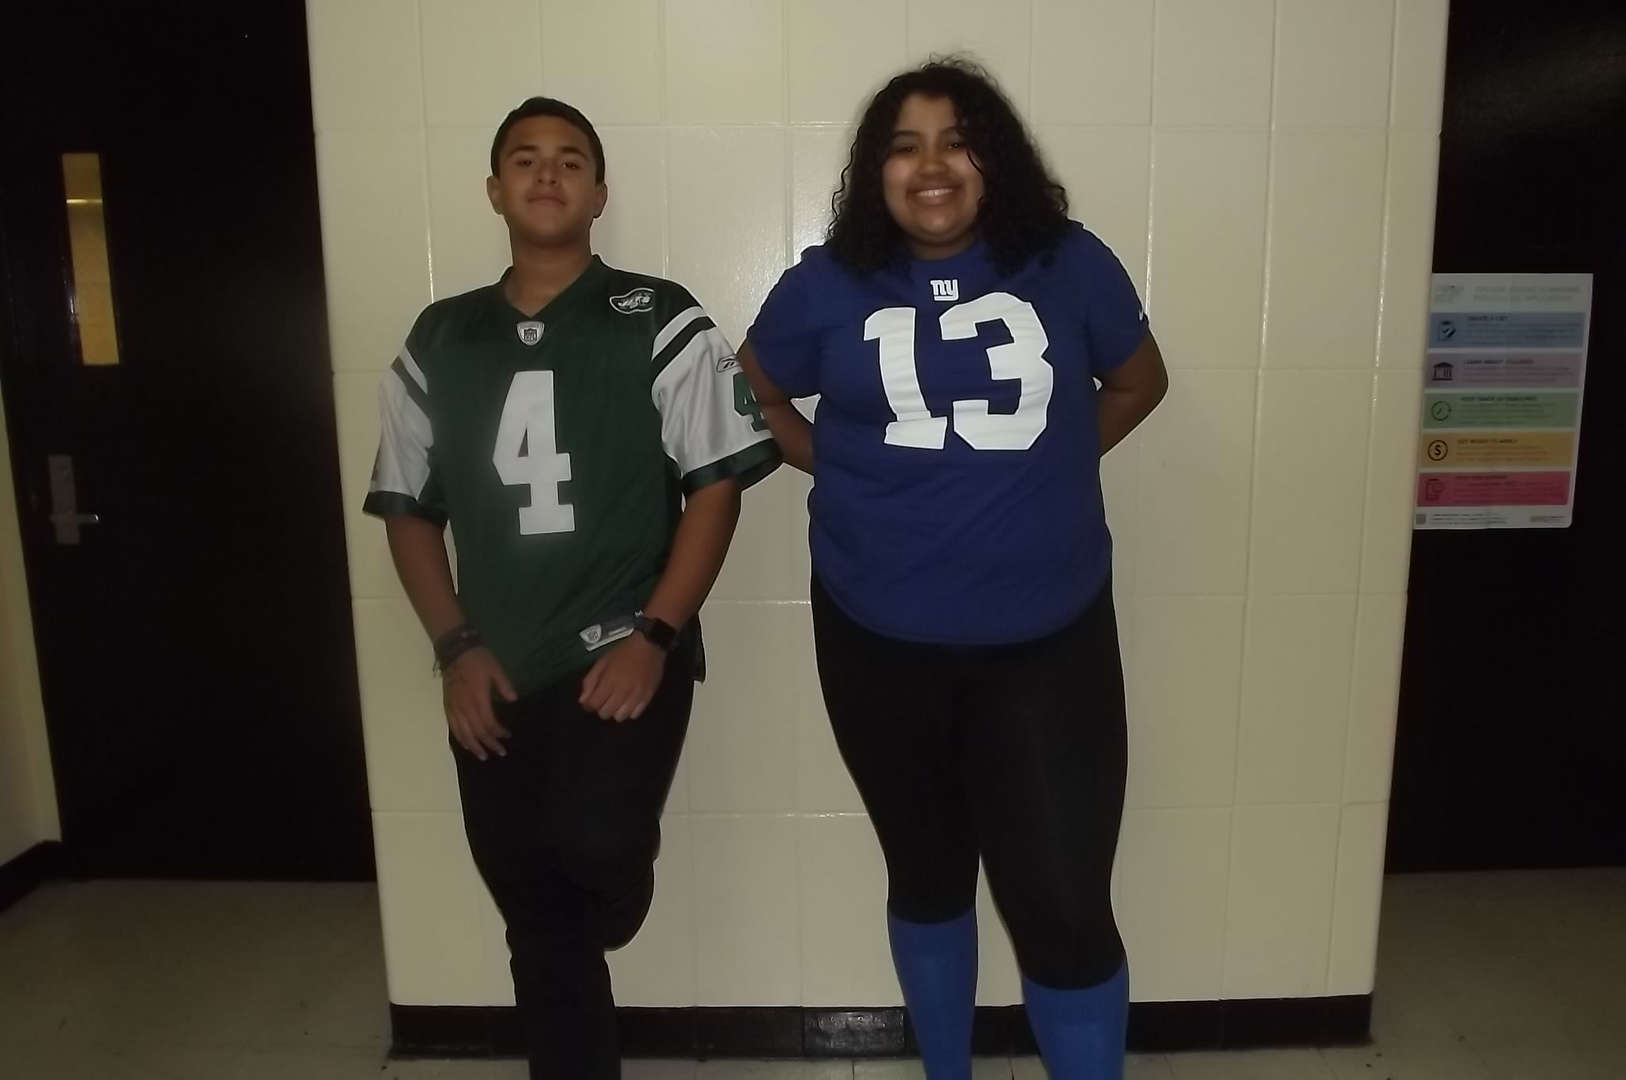 giants and jets jersey 2017-2018 Spirit Week #2